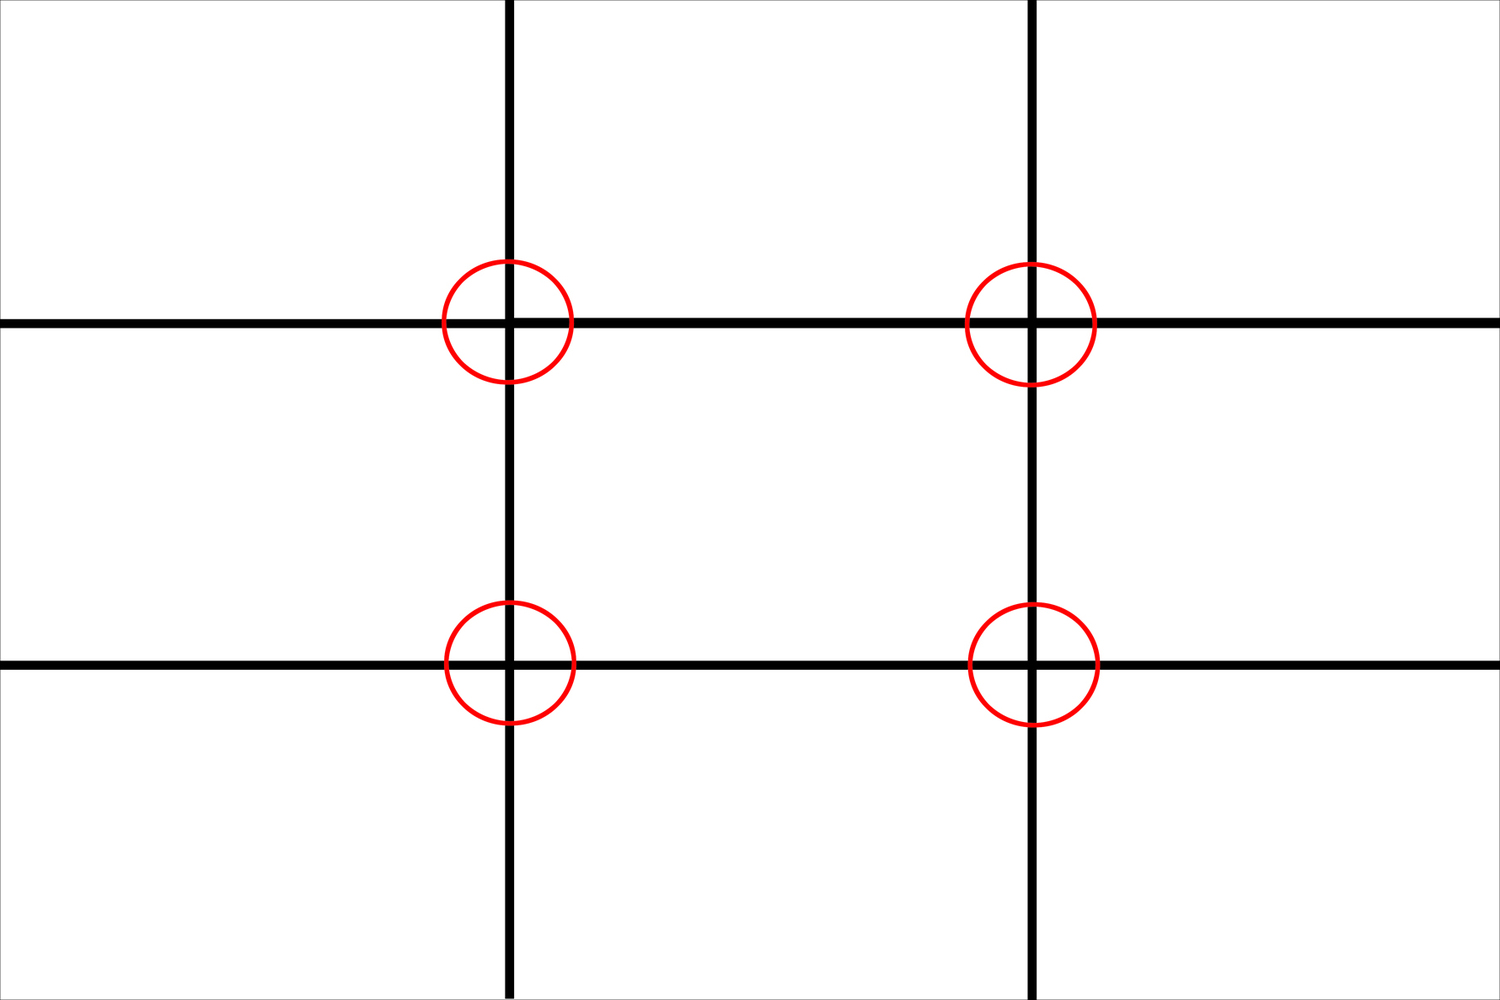 An example of the rule of thirds